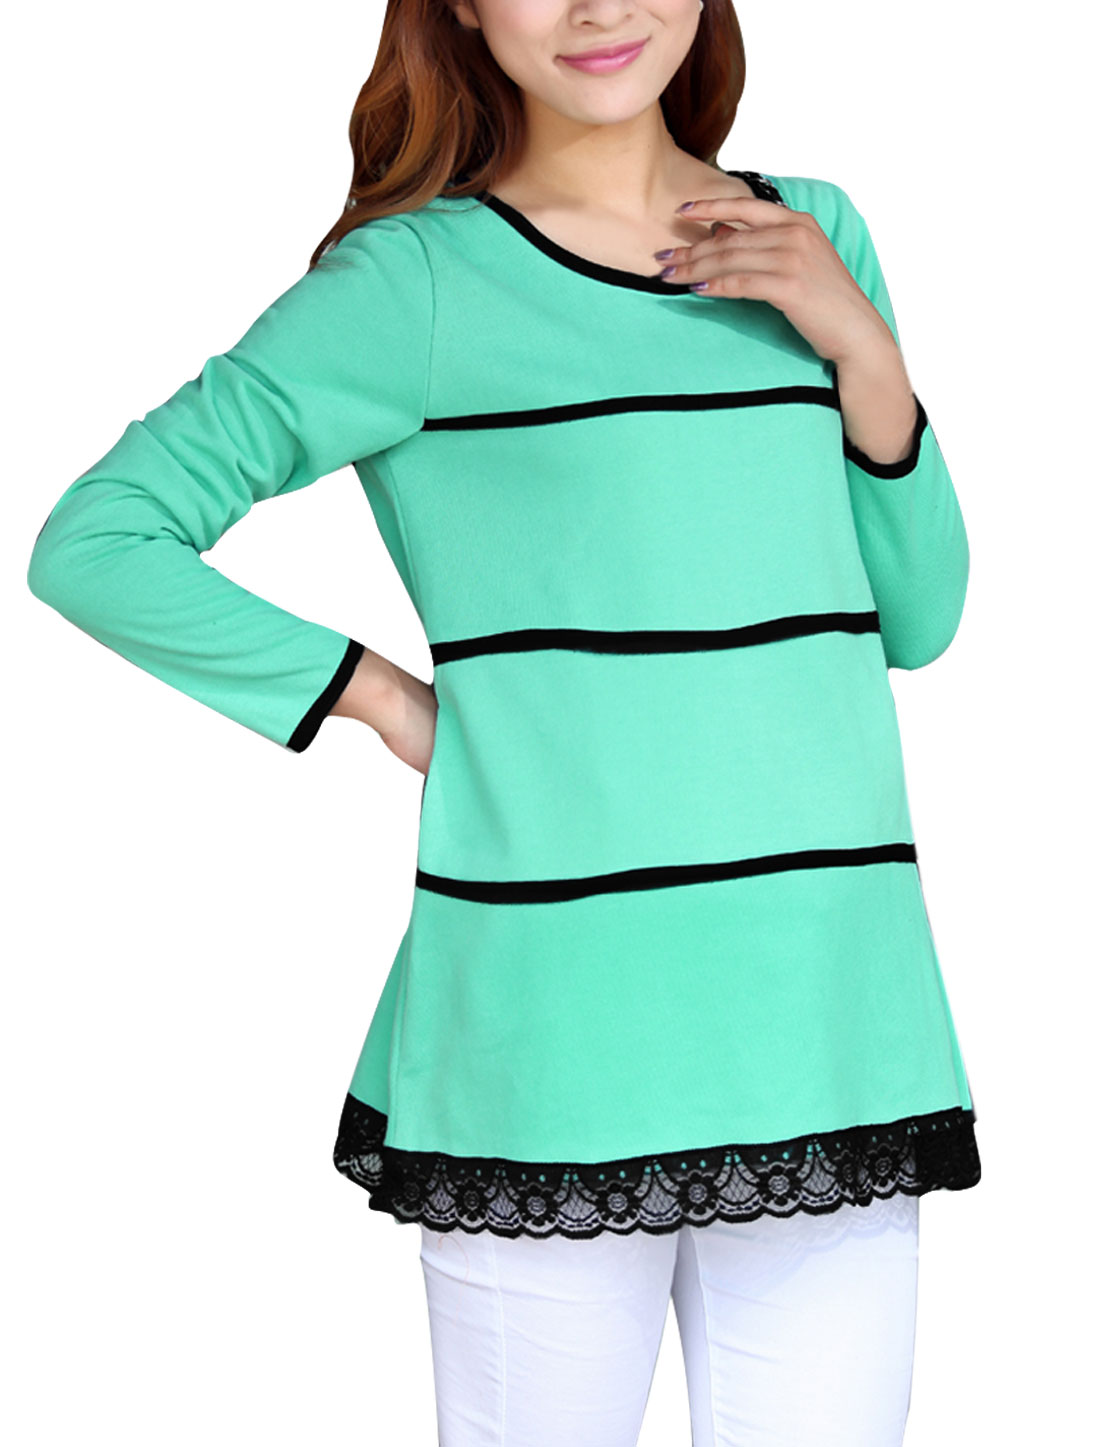 Matherhood Round Neck Self Tie Belt Knitwear Sea Green S